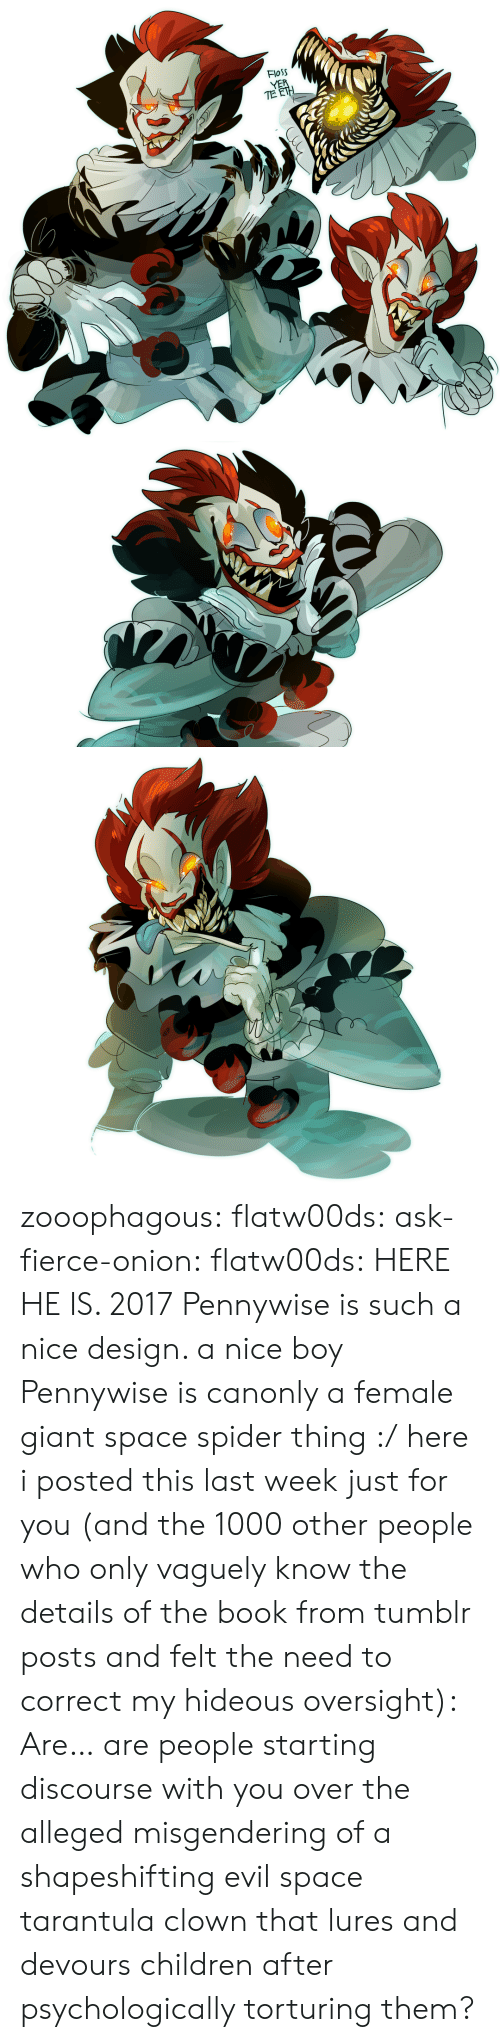 Alleged: FloSS  TE zooophagous:  flatw00ds:  ask-fierce-onion:  flatw00ds:  HERE HE IS. 2017 Pennywise is such a nice design. a nice boy  Pennywise is canonly a female giant space spider thing :/  here i posted this last week just for you (and the 1000 other people who only vaguely know the details of the book from tumblr posts and felt the need to correct my hideous oversight):  Are… are people starting discourse with you over the alleged misgendering of a shapeshifting evil space tarantula clown that lures and devours children after psychologically torturing them?